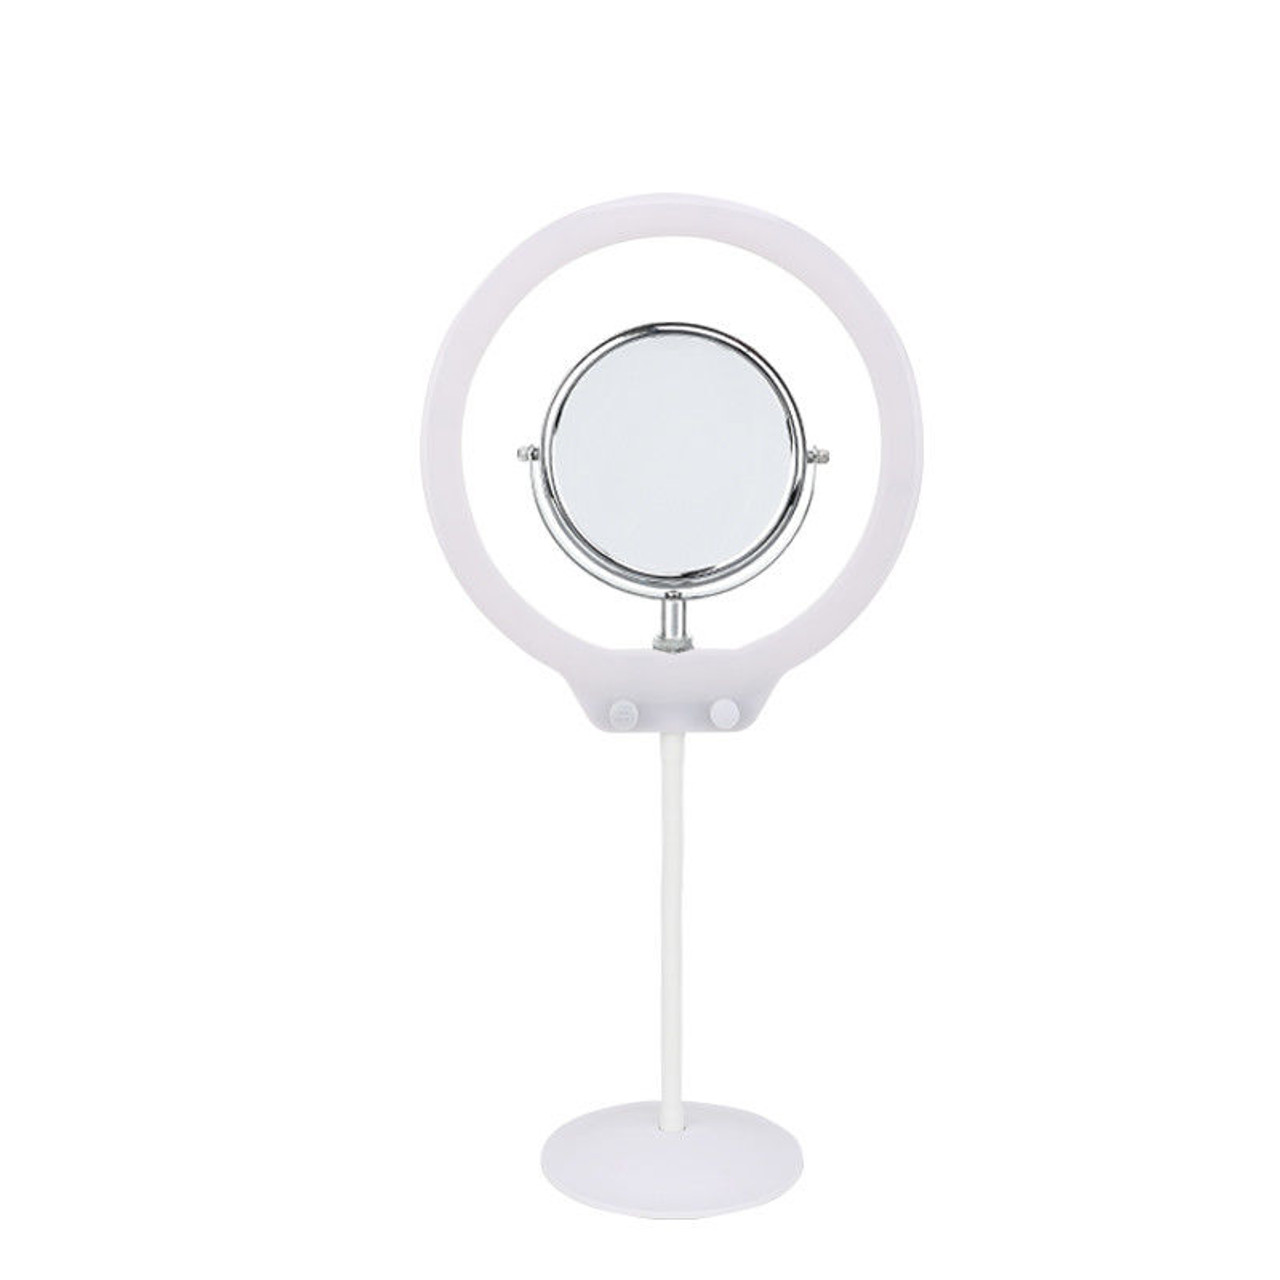 Stellar Desktop Ring Light Dimmable and Bicolor kit USB